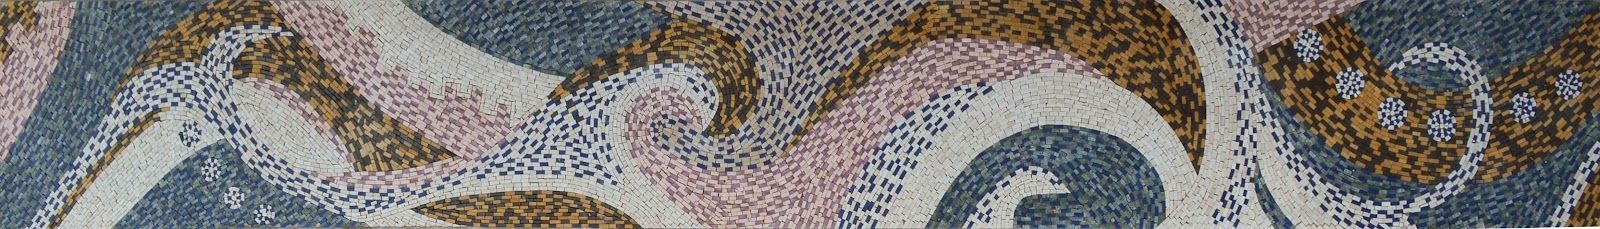 Impressionistic Waves - Abstract Mosaic Pattern by Mozaico